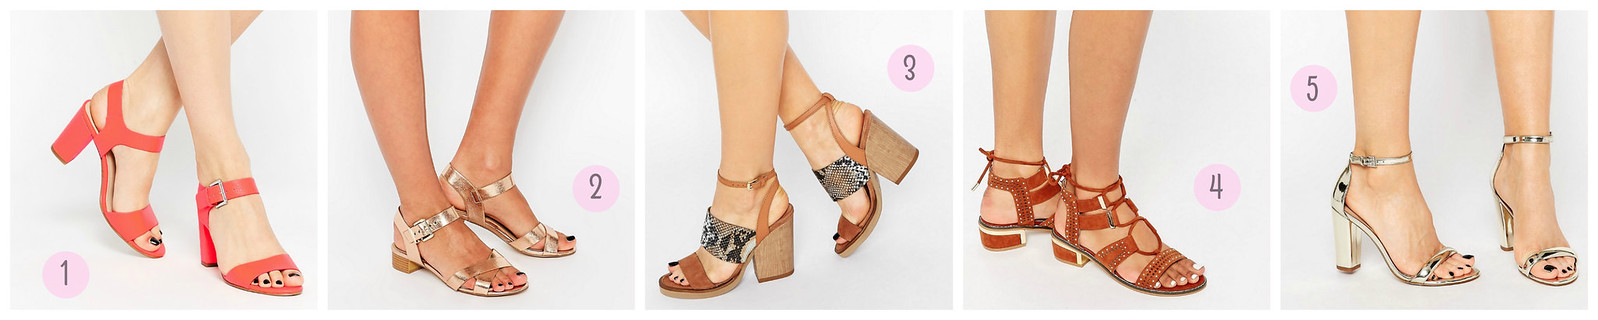 block heels asos spring 2016 selection sandals summer